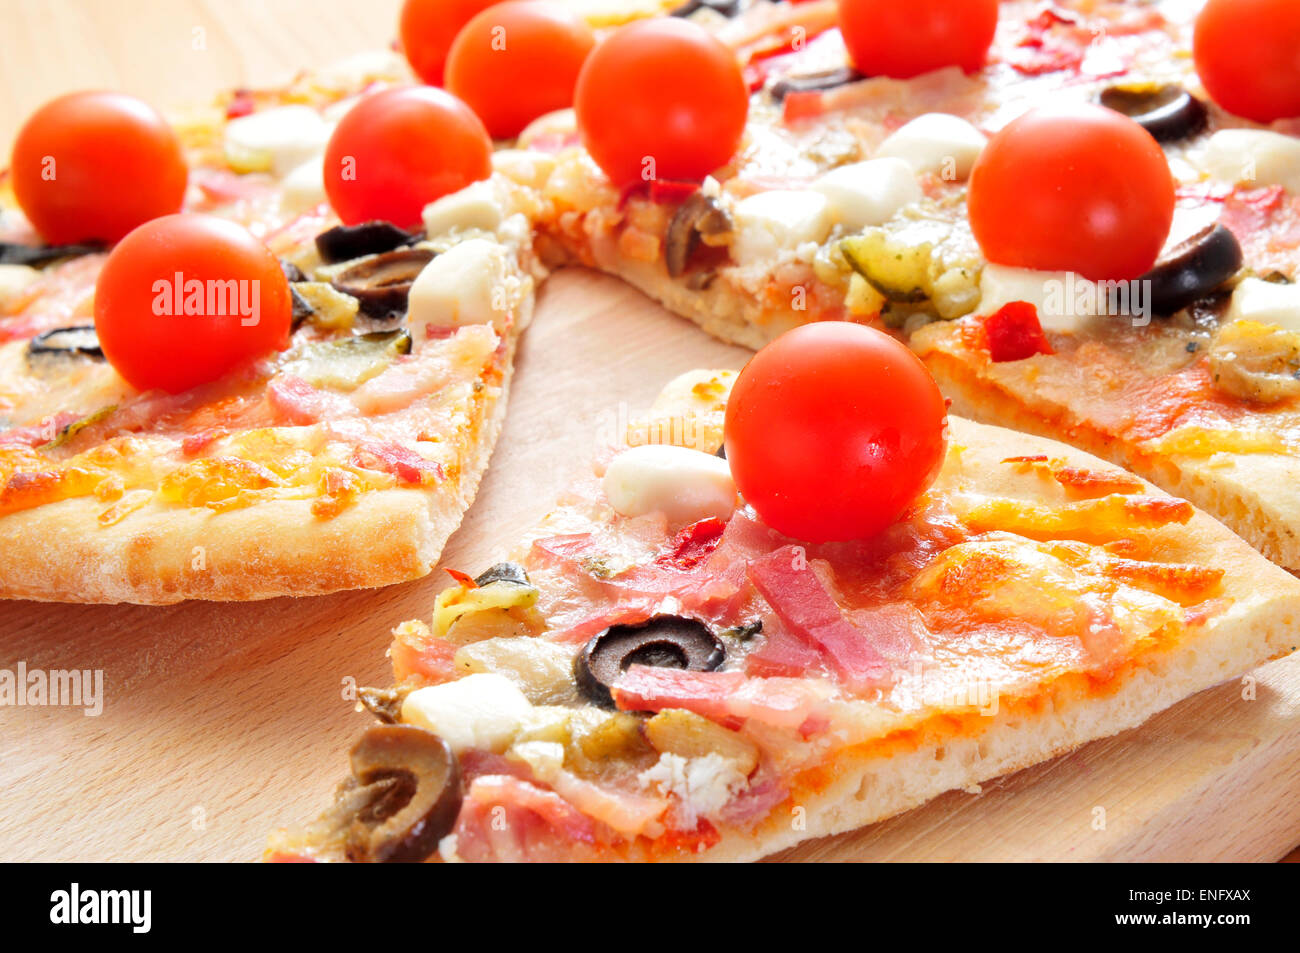 some slices of pizza with bacon, olives, cherry tomatoes, goat cheese, green pepper and eggplant - Stock Image